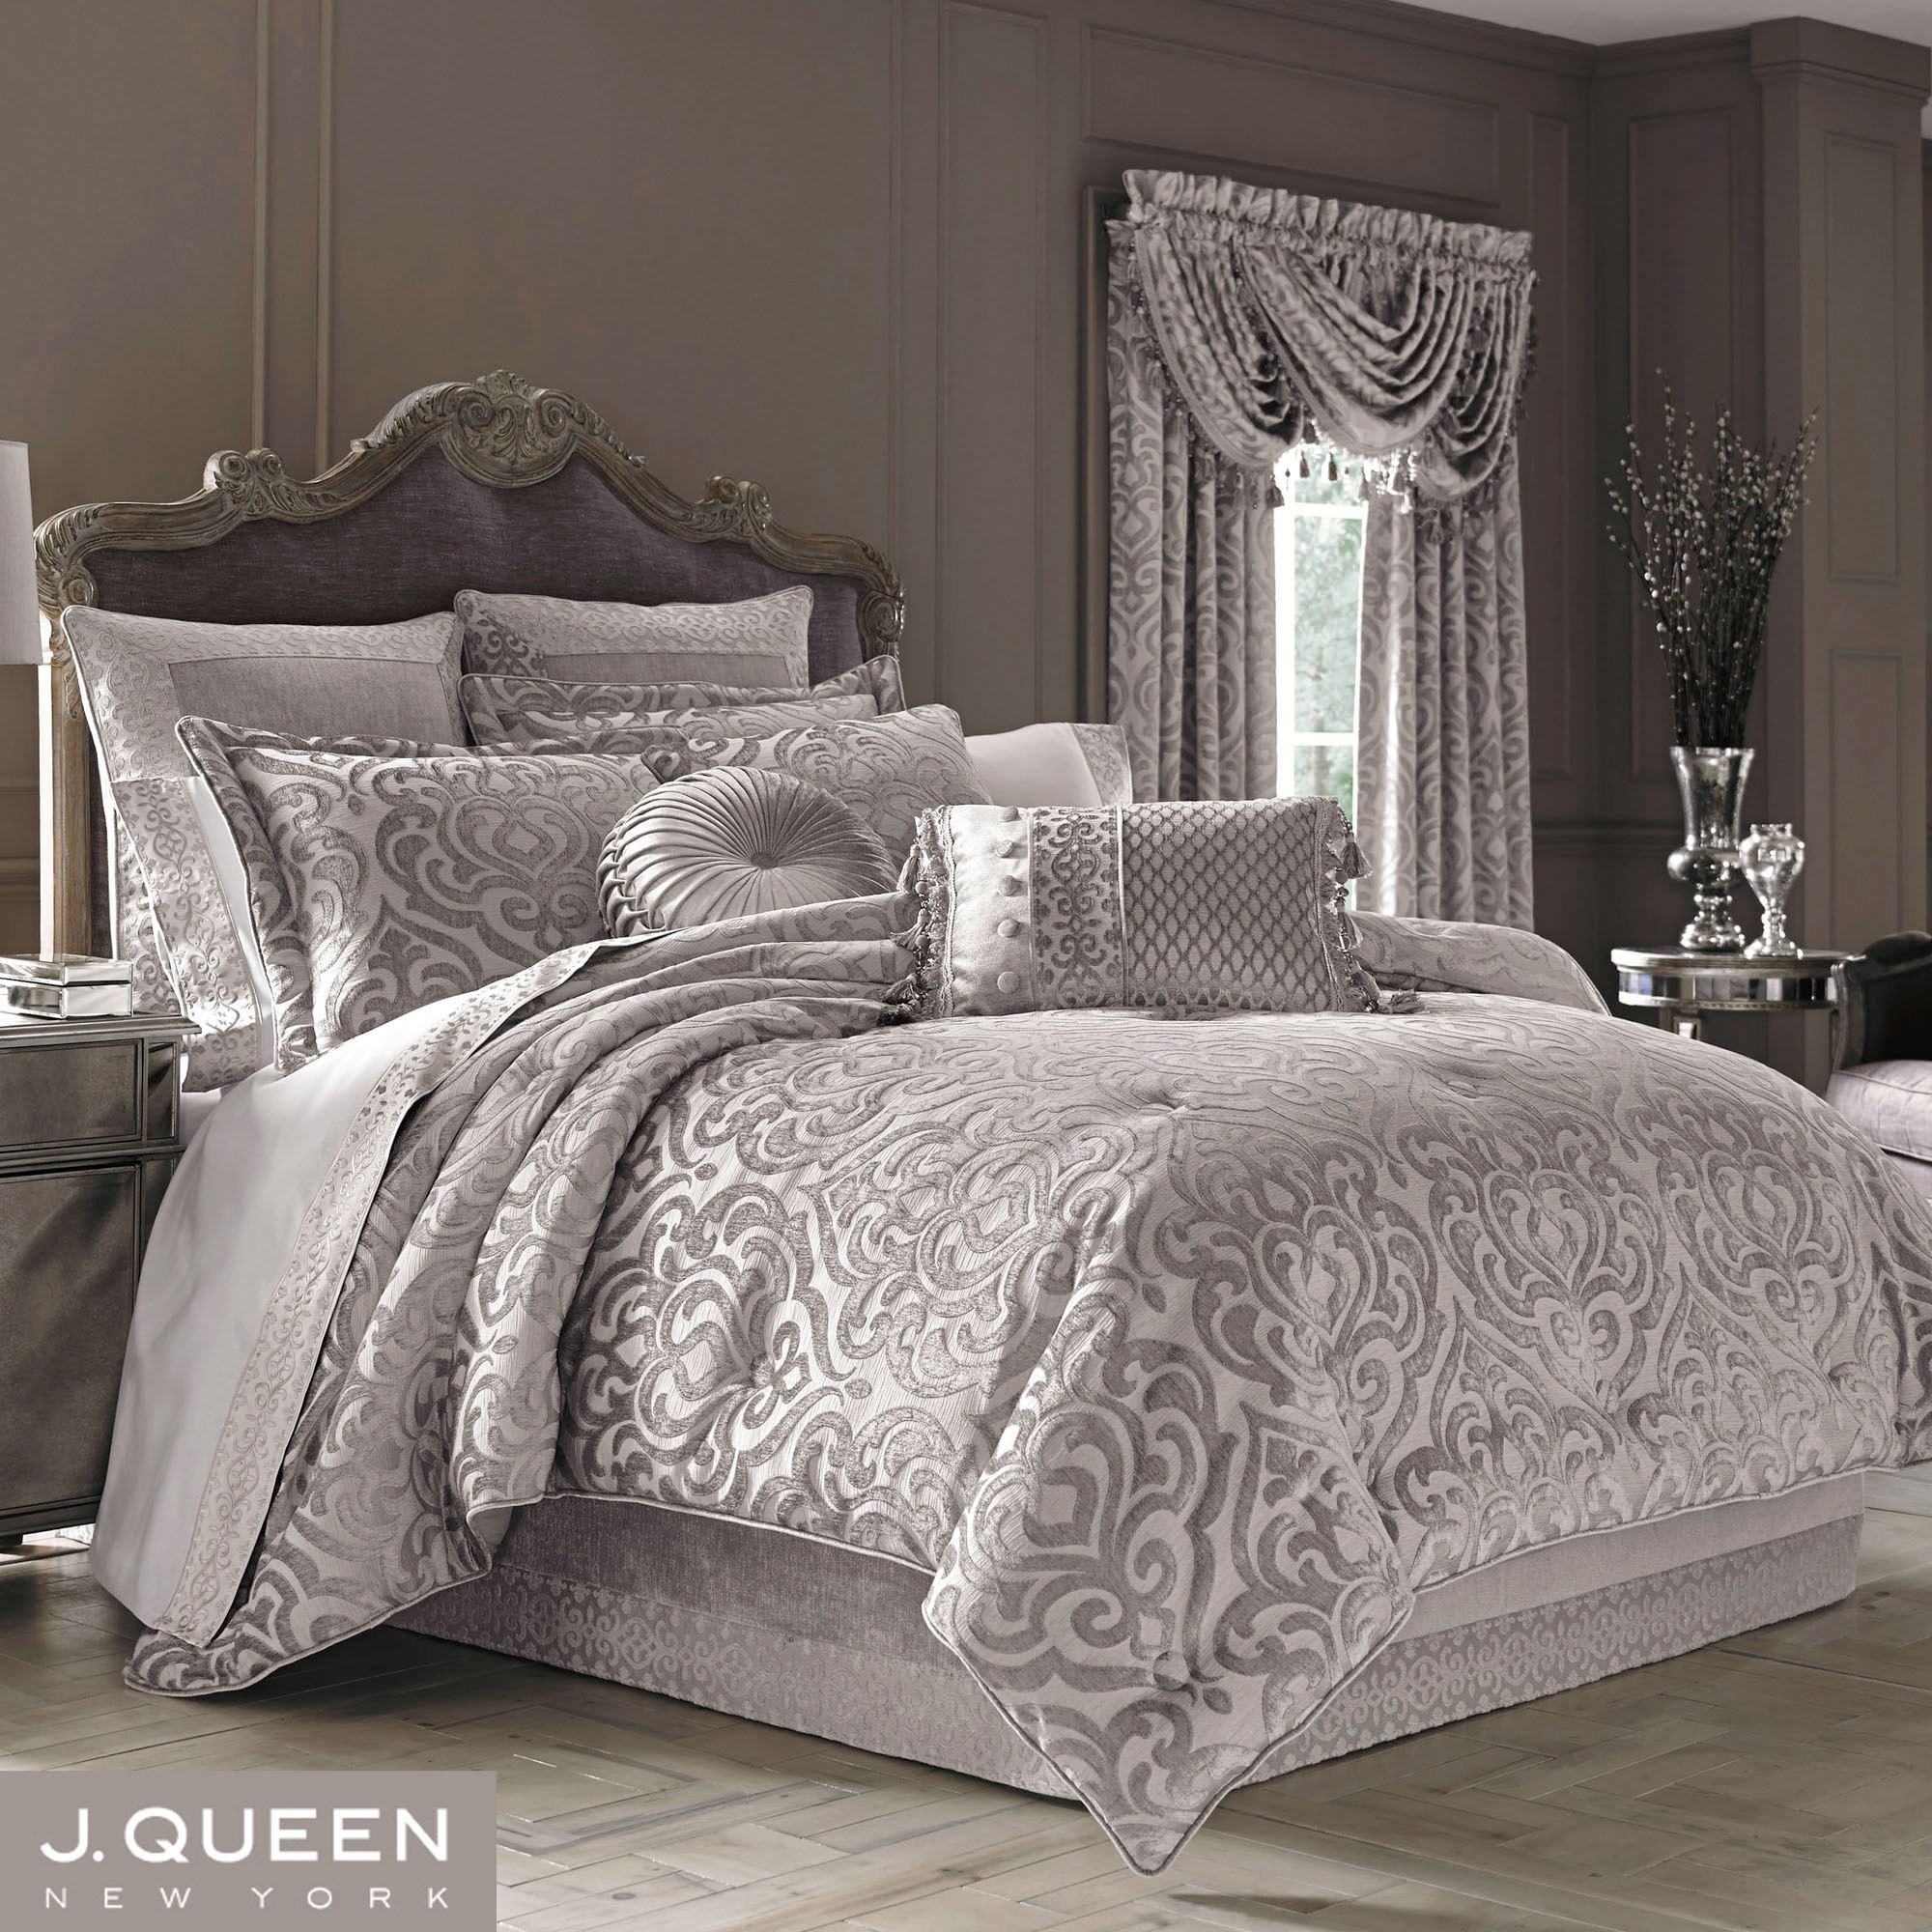 Best Sicily Silver Gray Medallion Comforter Bedding By J Queen With Pictures